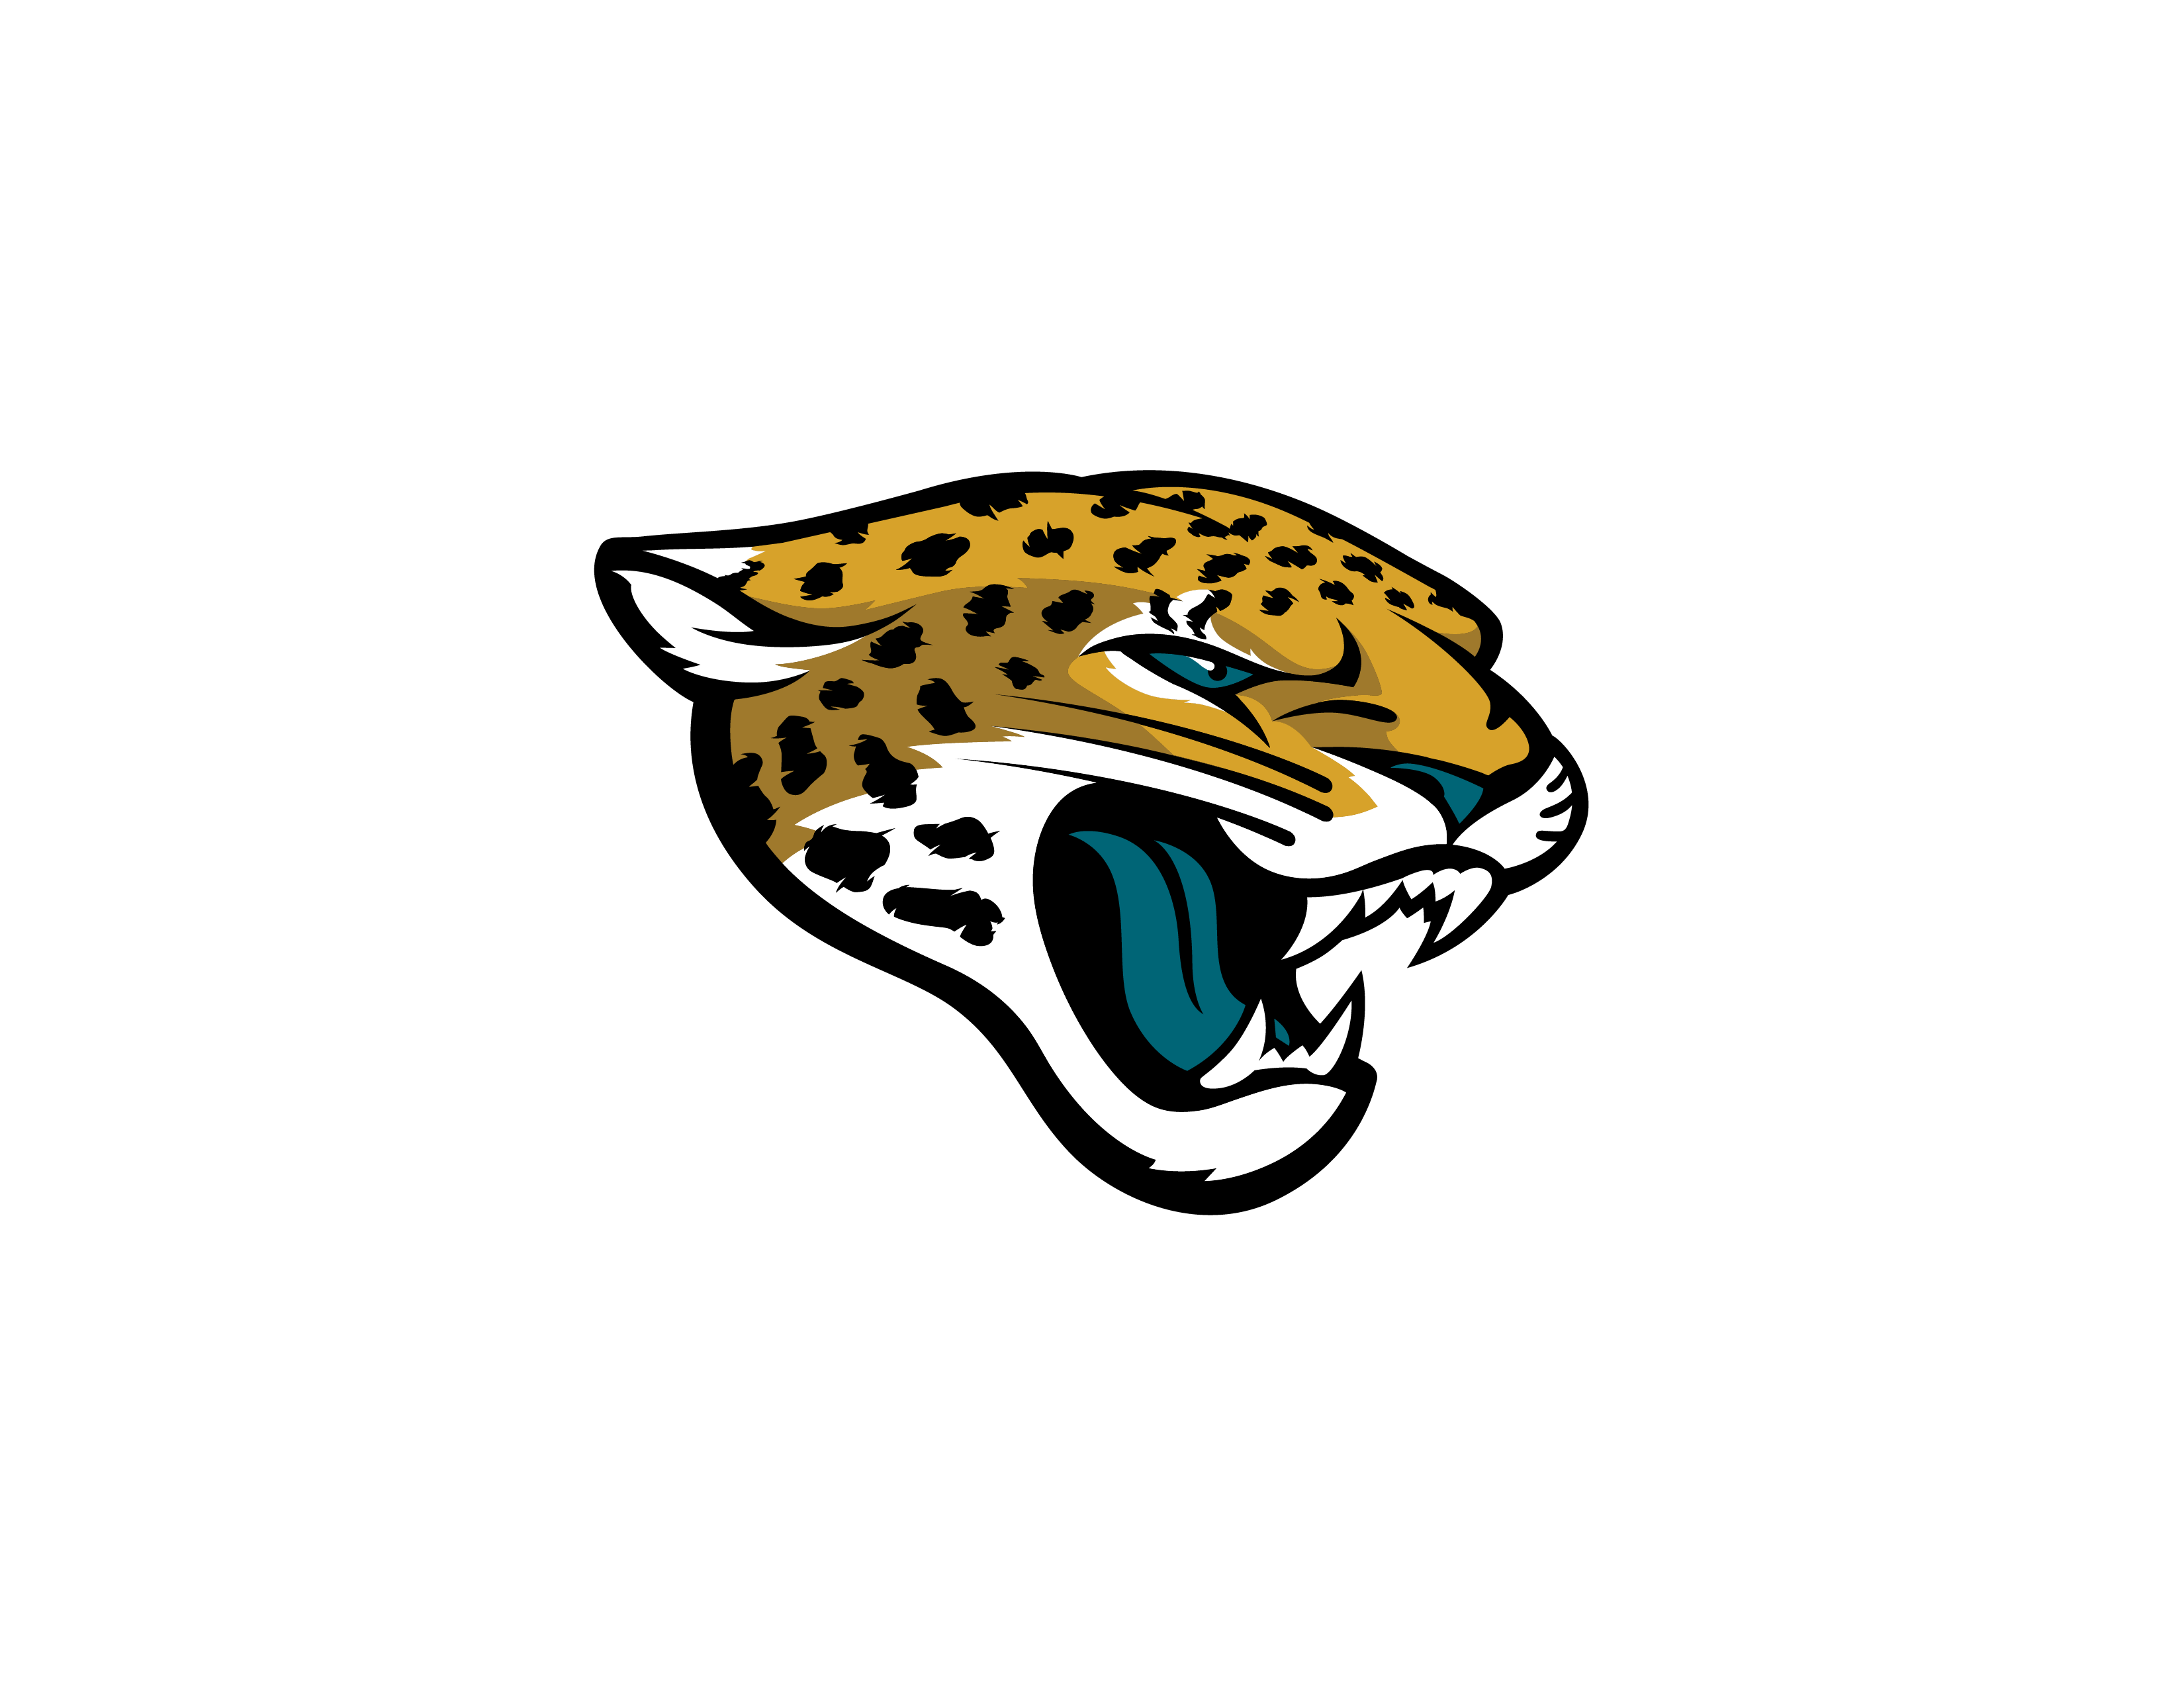 Jacksonville Jaguars And Tailgate Guys Have Teamed Up To Offer Turn Key,  Hassle Free Tailgating For Jaguars Football Fans! All Tailgates Are Located  Steps ...